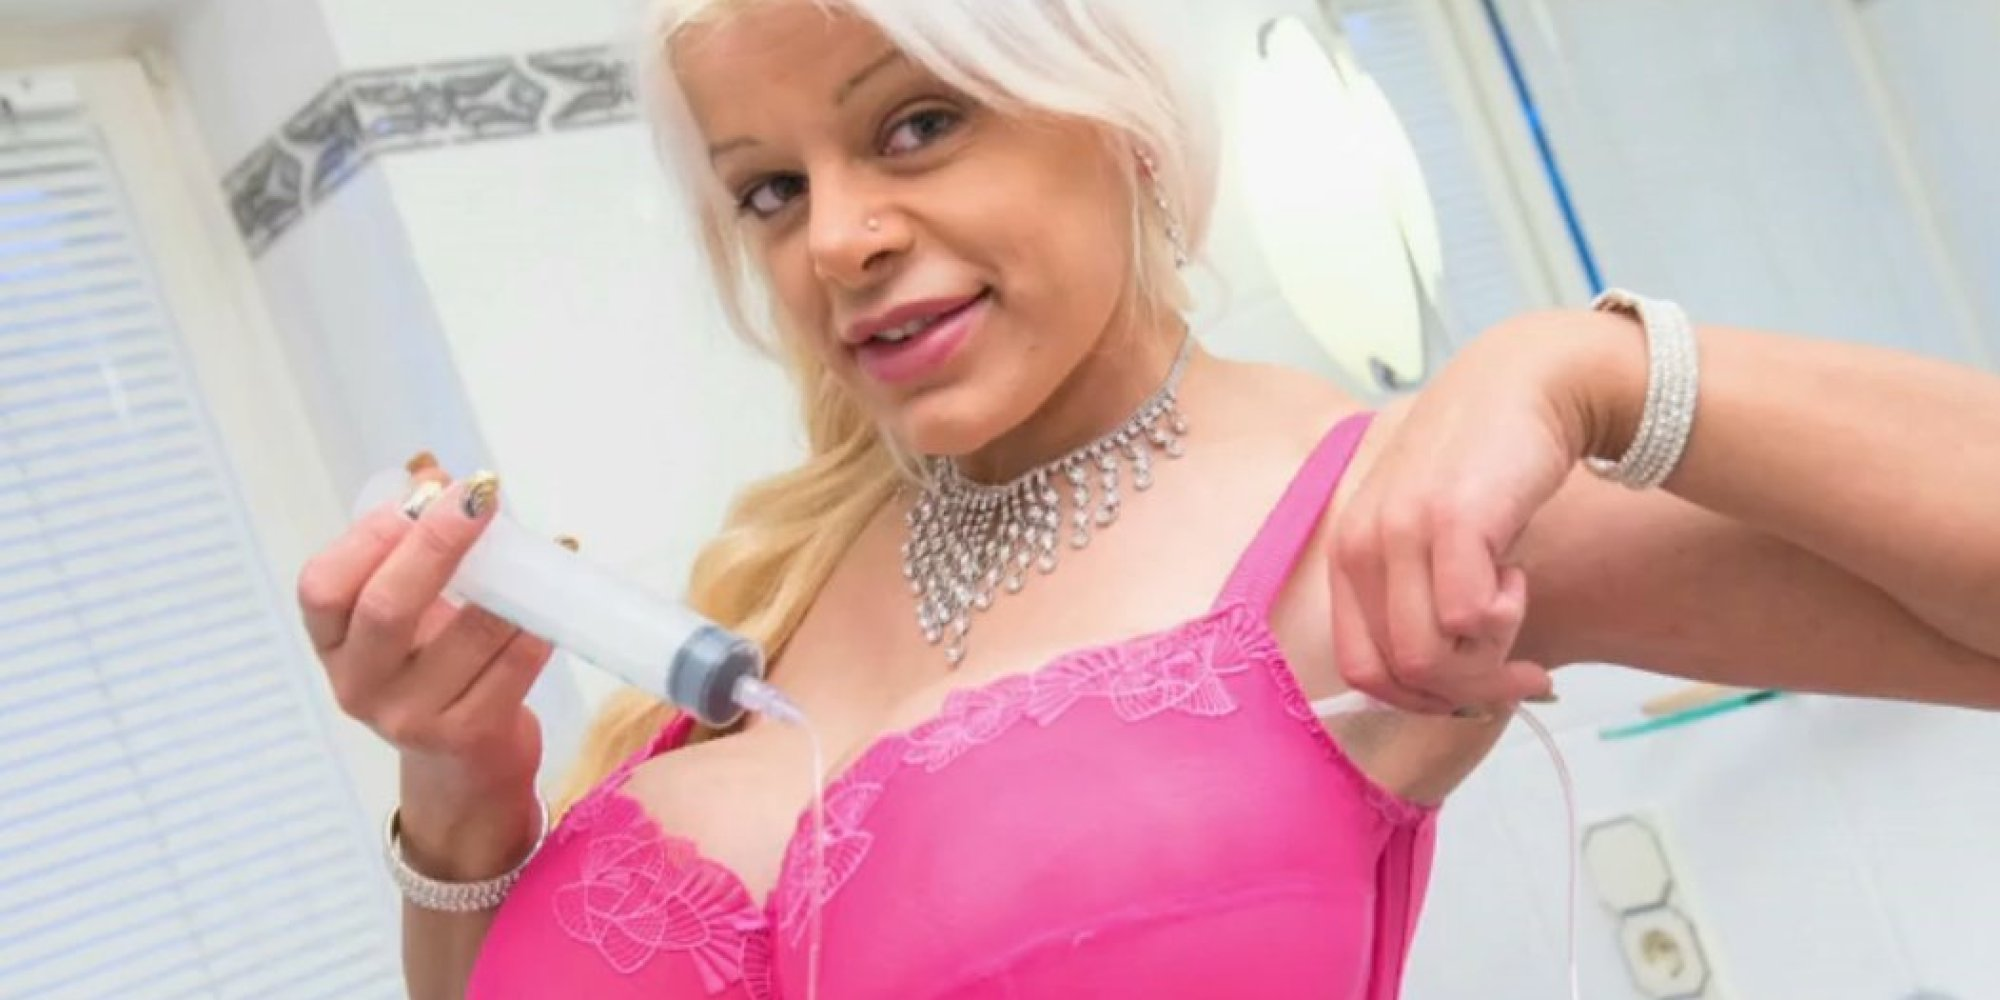 martina big's implants let her pump up her size 32 l breasts | huffpost